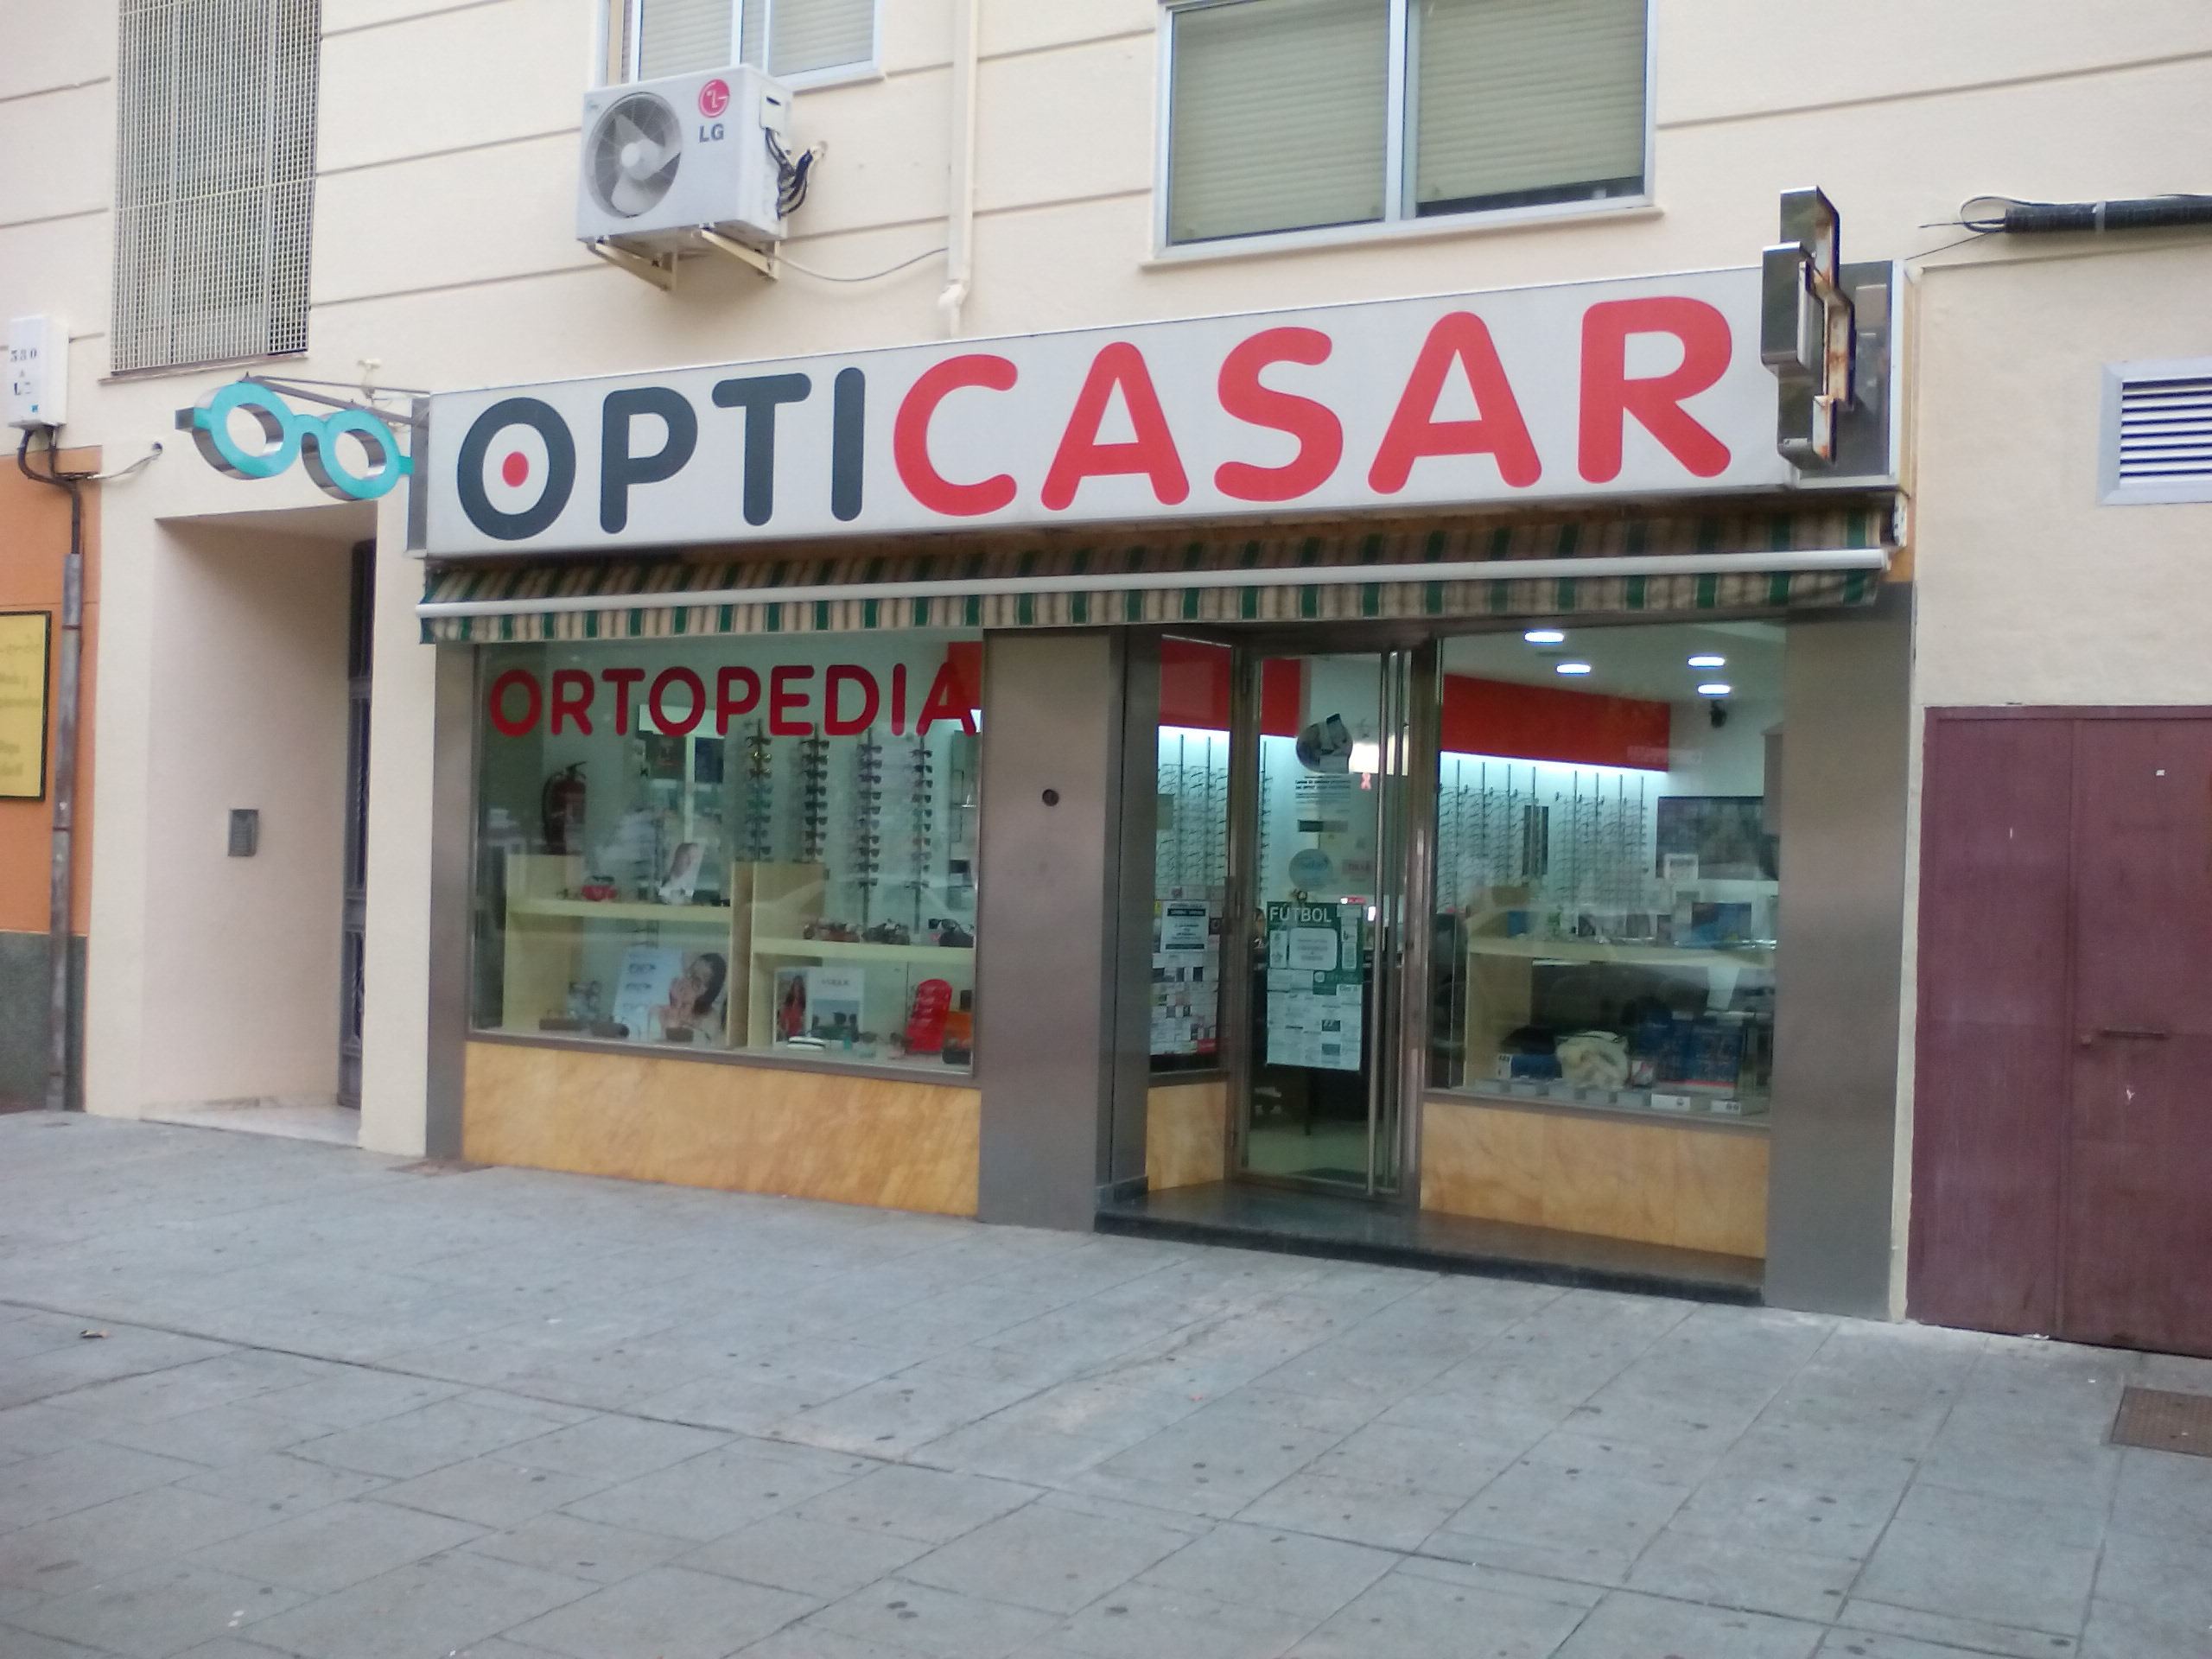 optica ortopedia Casar de Cáceres